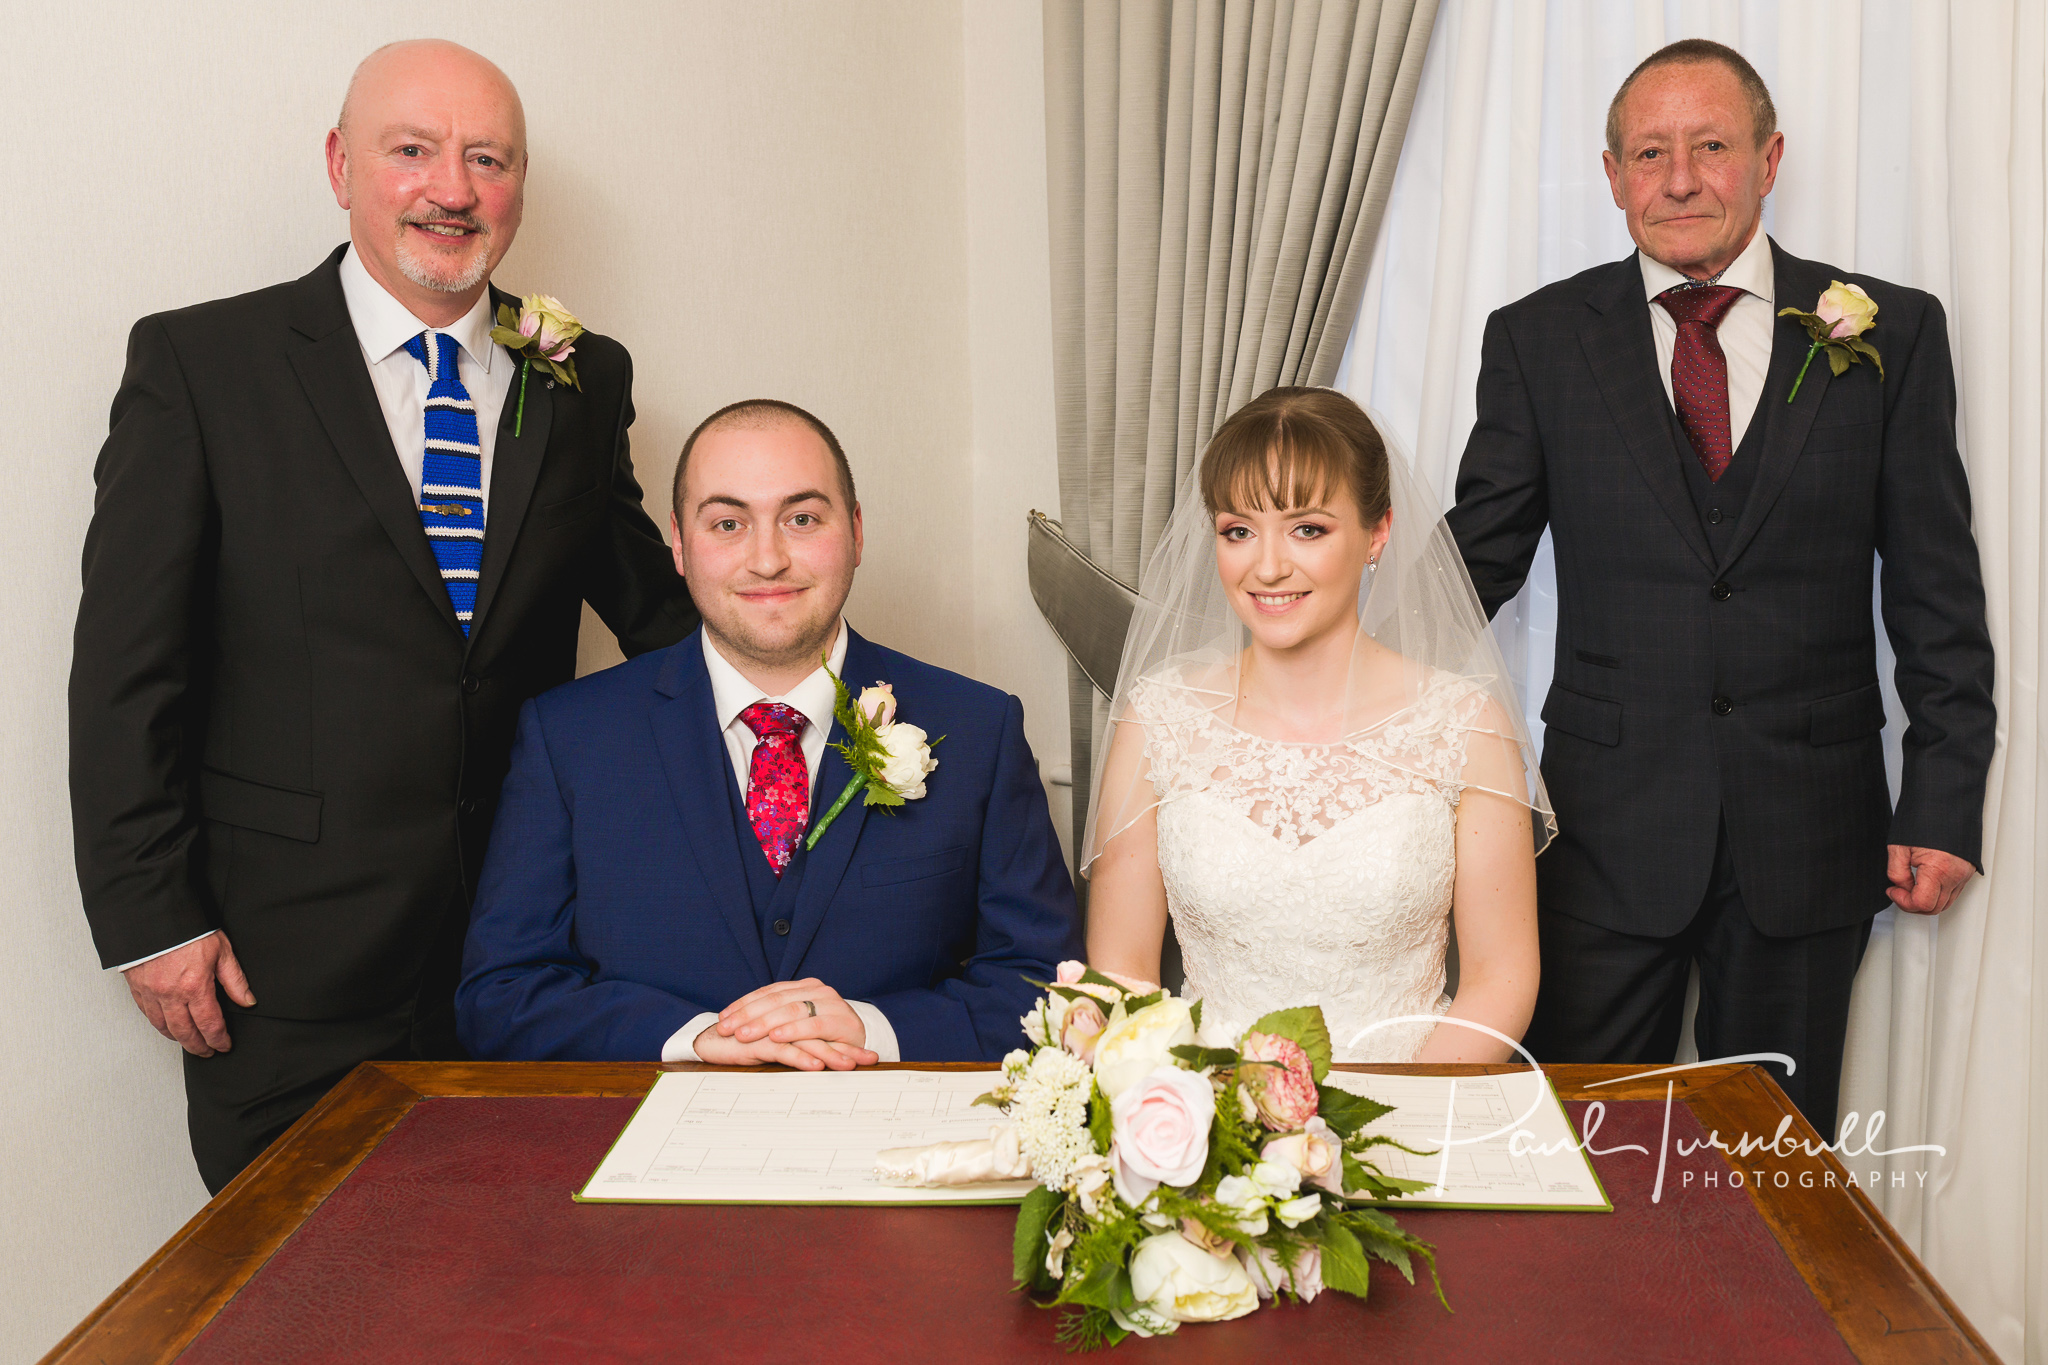 wedding-photographer-pontefract-yorkshire-laura-keanu-041.jpg